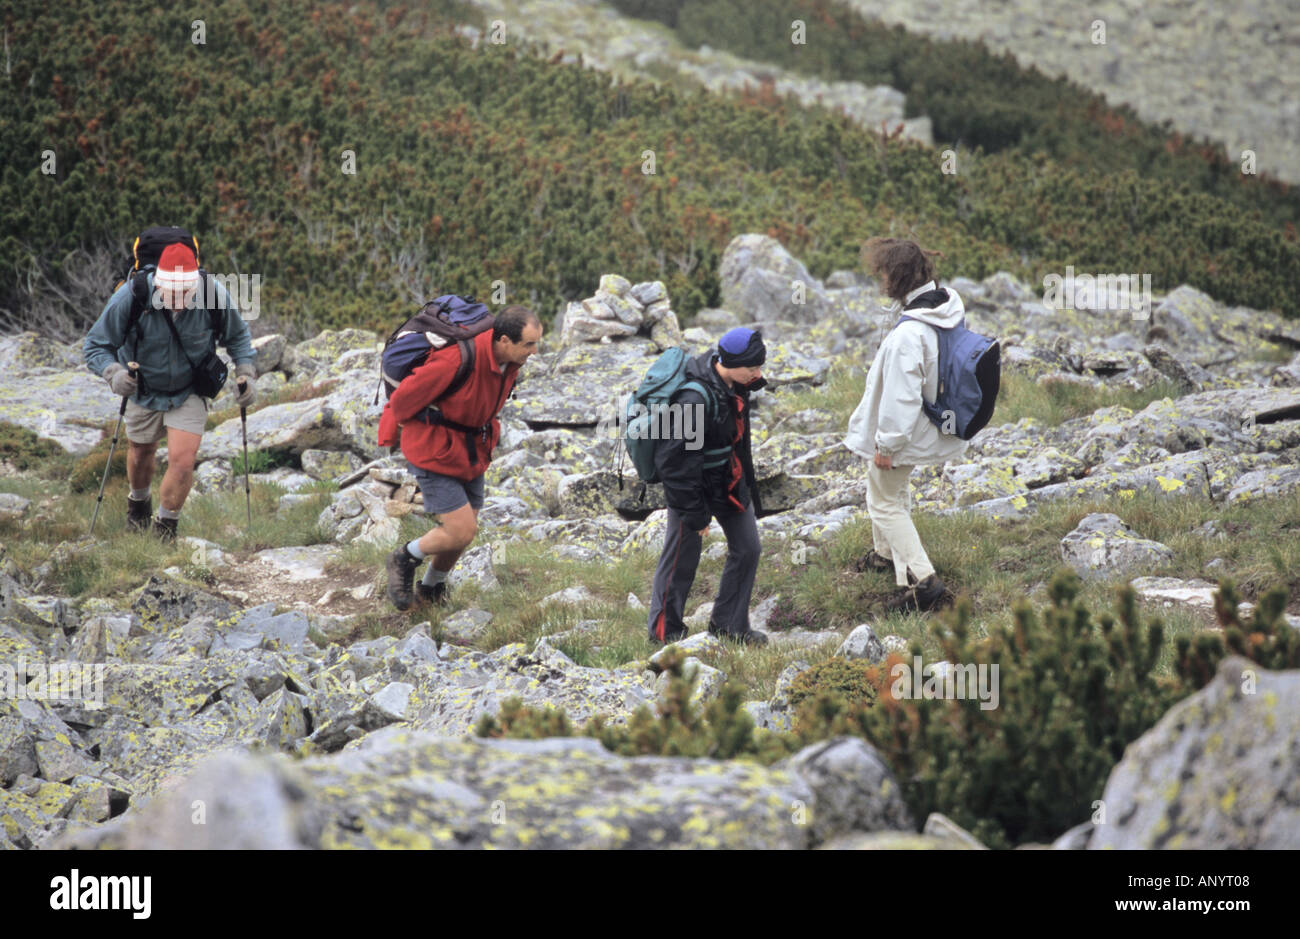 Group of people walking in Bezbog area Pirin National Park Bulgaria - Stock Image